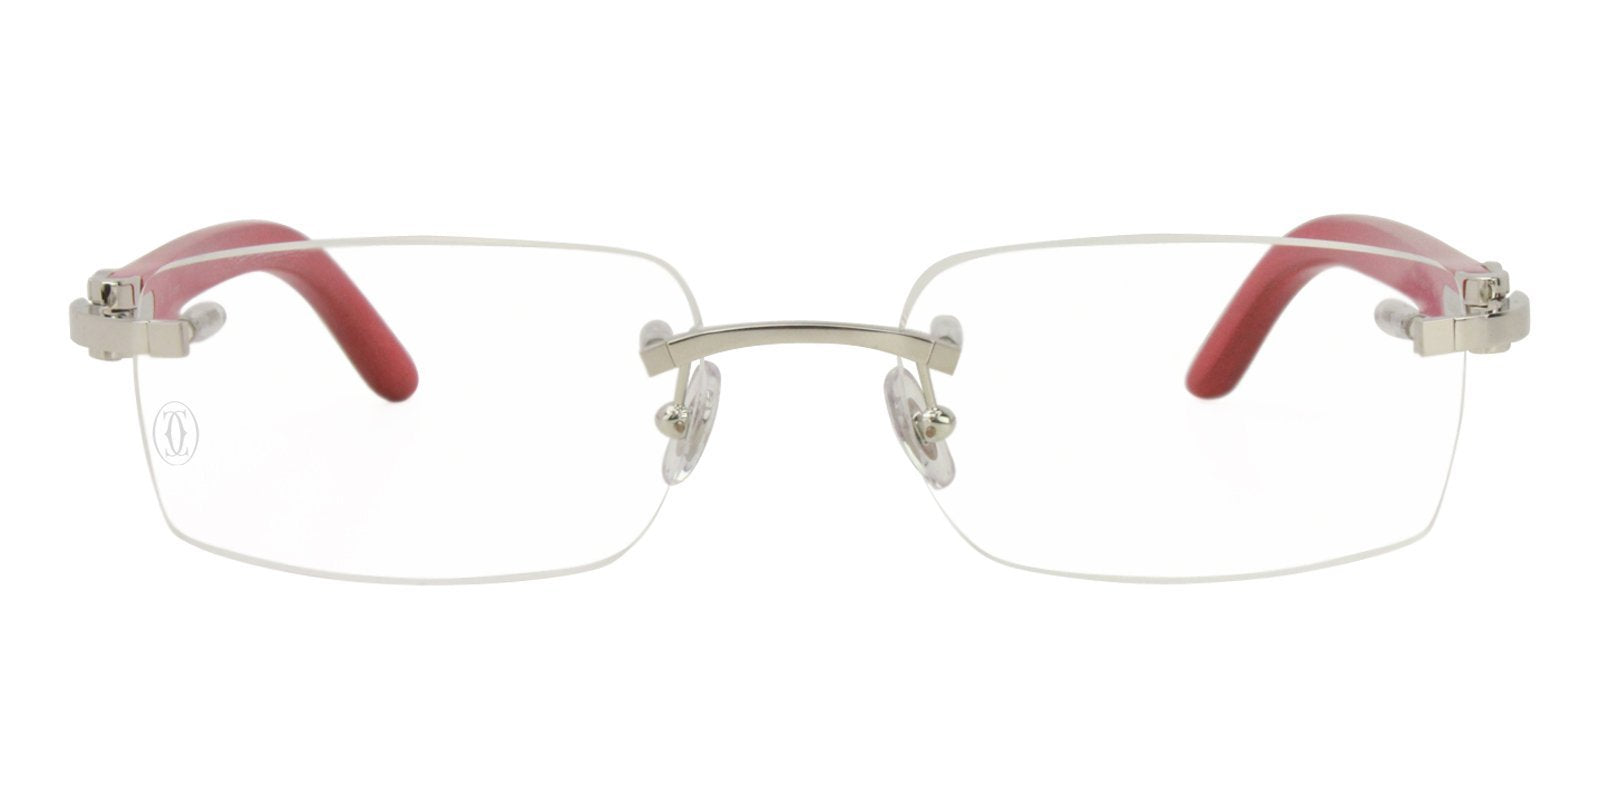 Cartier - C Decor Silver Rimless Unisex Eyeglasses - 53mm-Eyeglasses-Designer Eyes